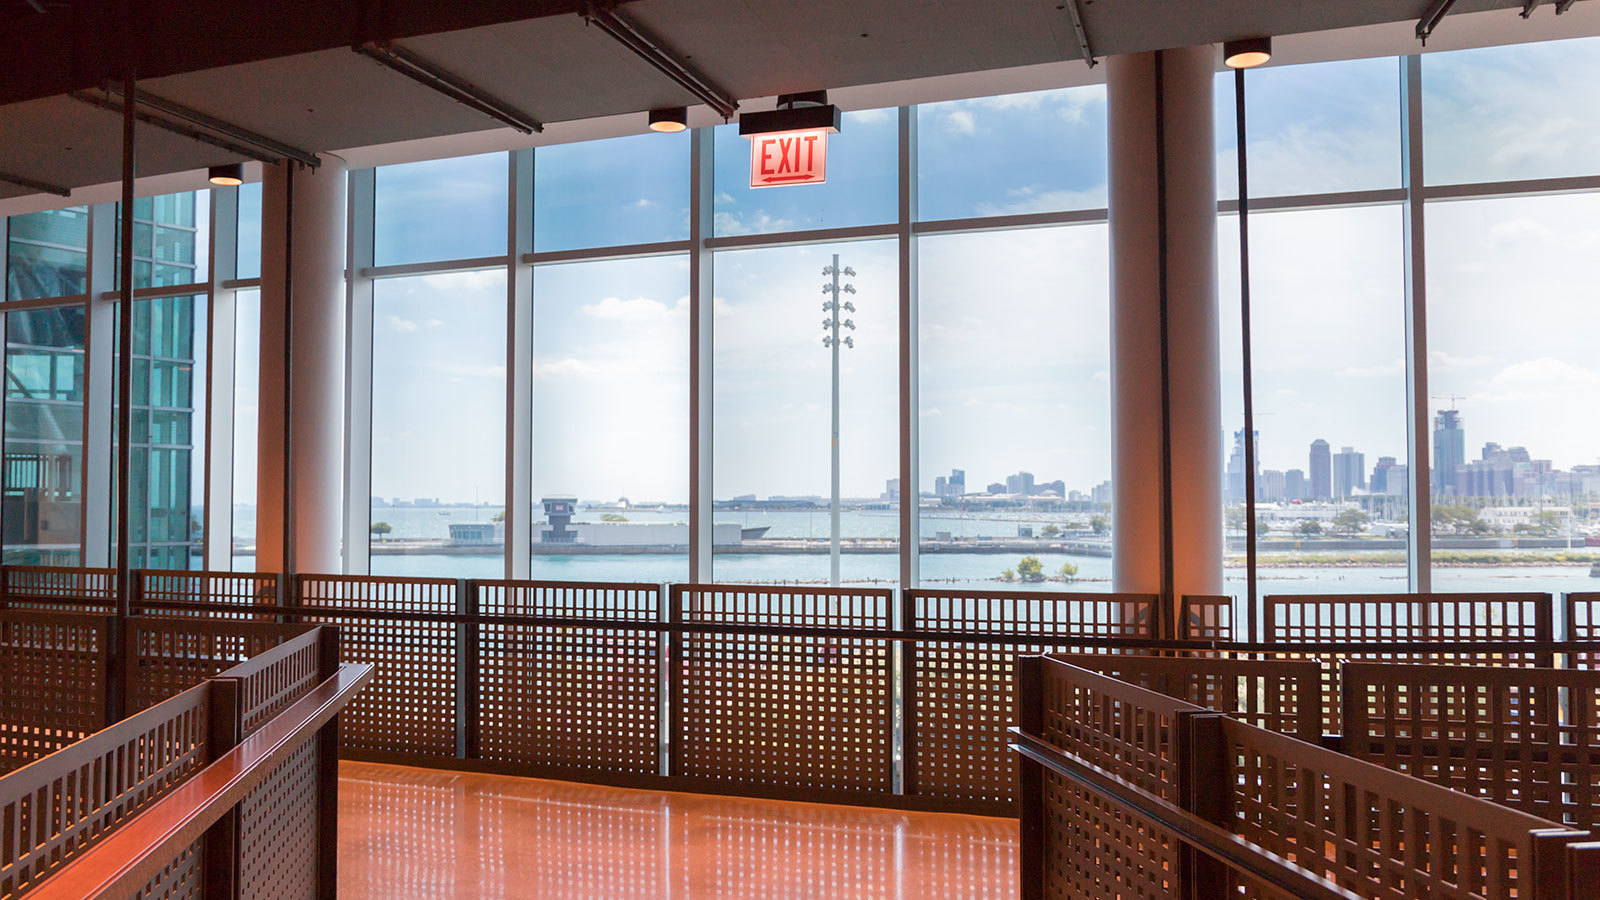 Thanks to SageGlass®, the visitors to The Yard at Chicago Shakespeare enjoy unobstructed views of Lake Michigan in a stunning interior space that is free from uncomfortable heat and glare.